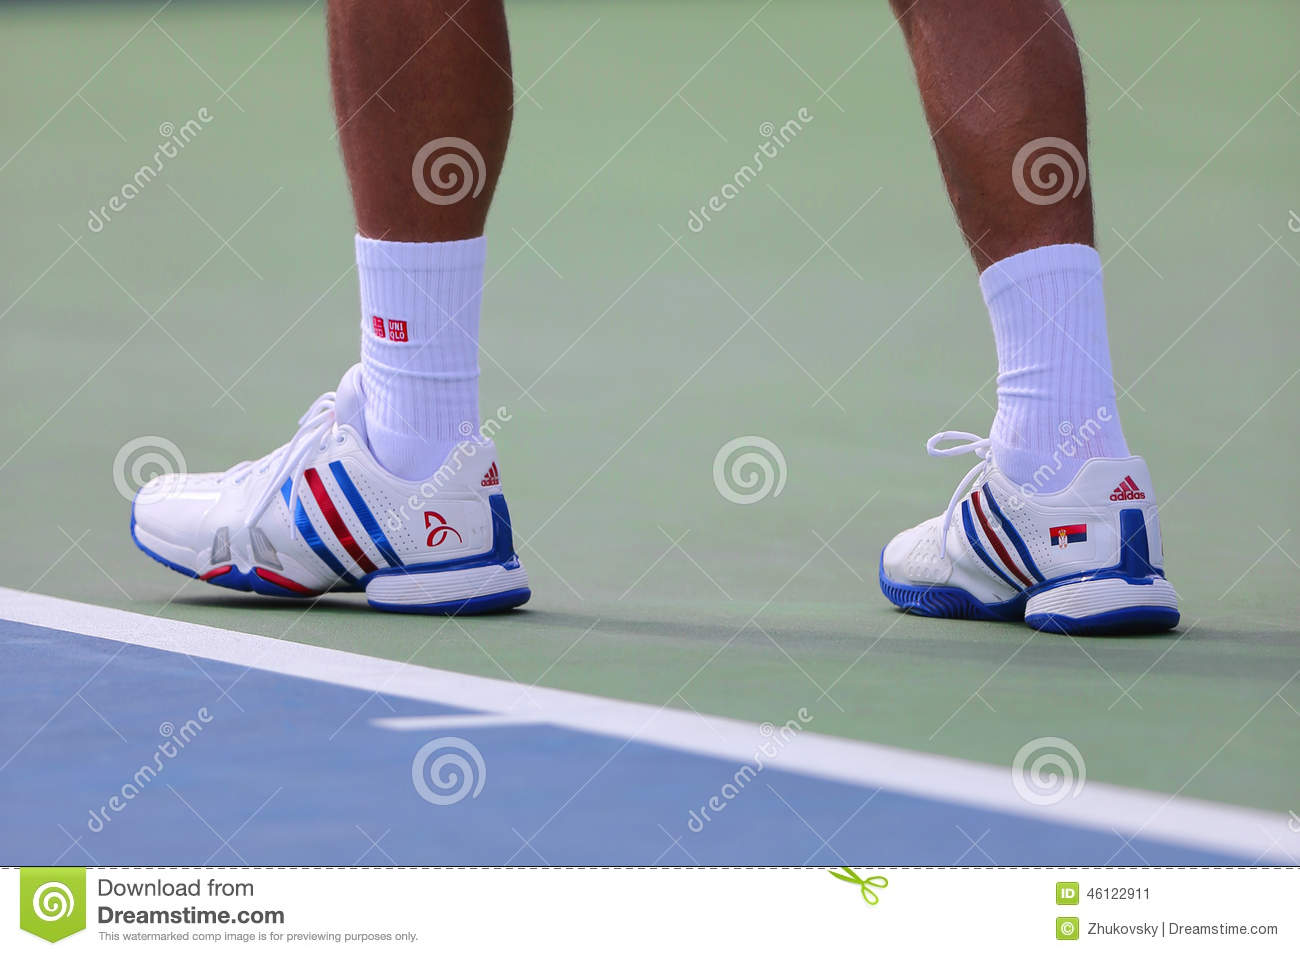 Six Times Grand Slam Champion Novak Djokovic Wears Custom Adidas Tennis Shoes During Match At Us Open 2014 Editorial Photo Image Of Ball King 46122911